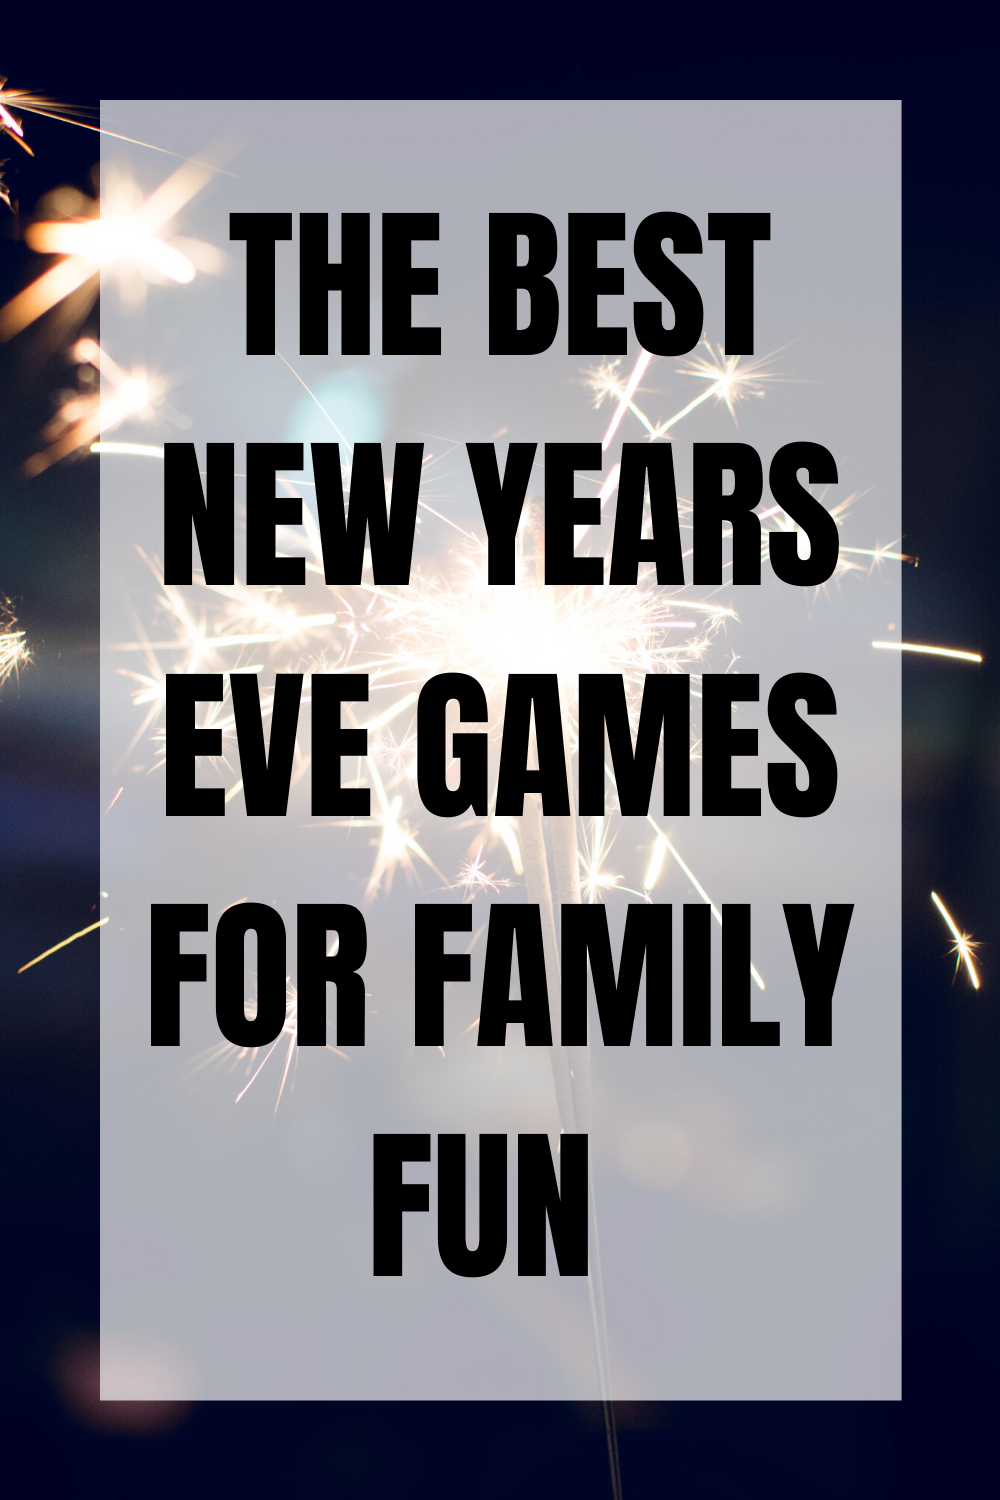 New Years Eve Games for Family Fun